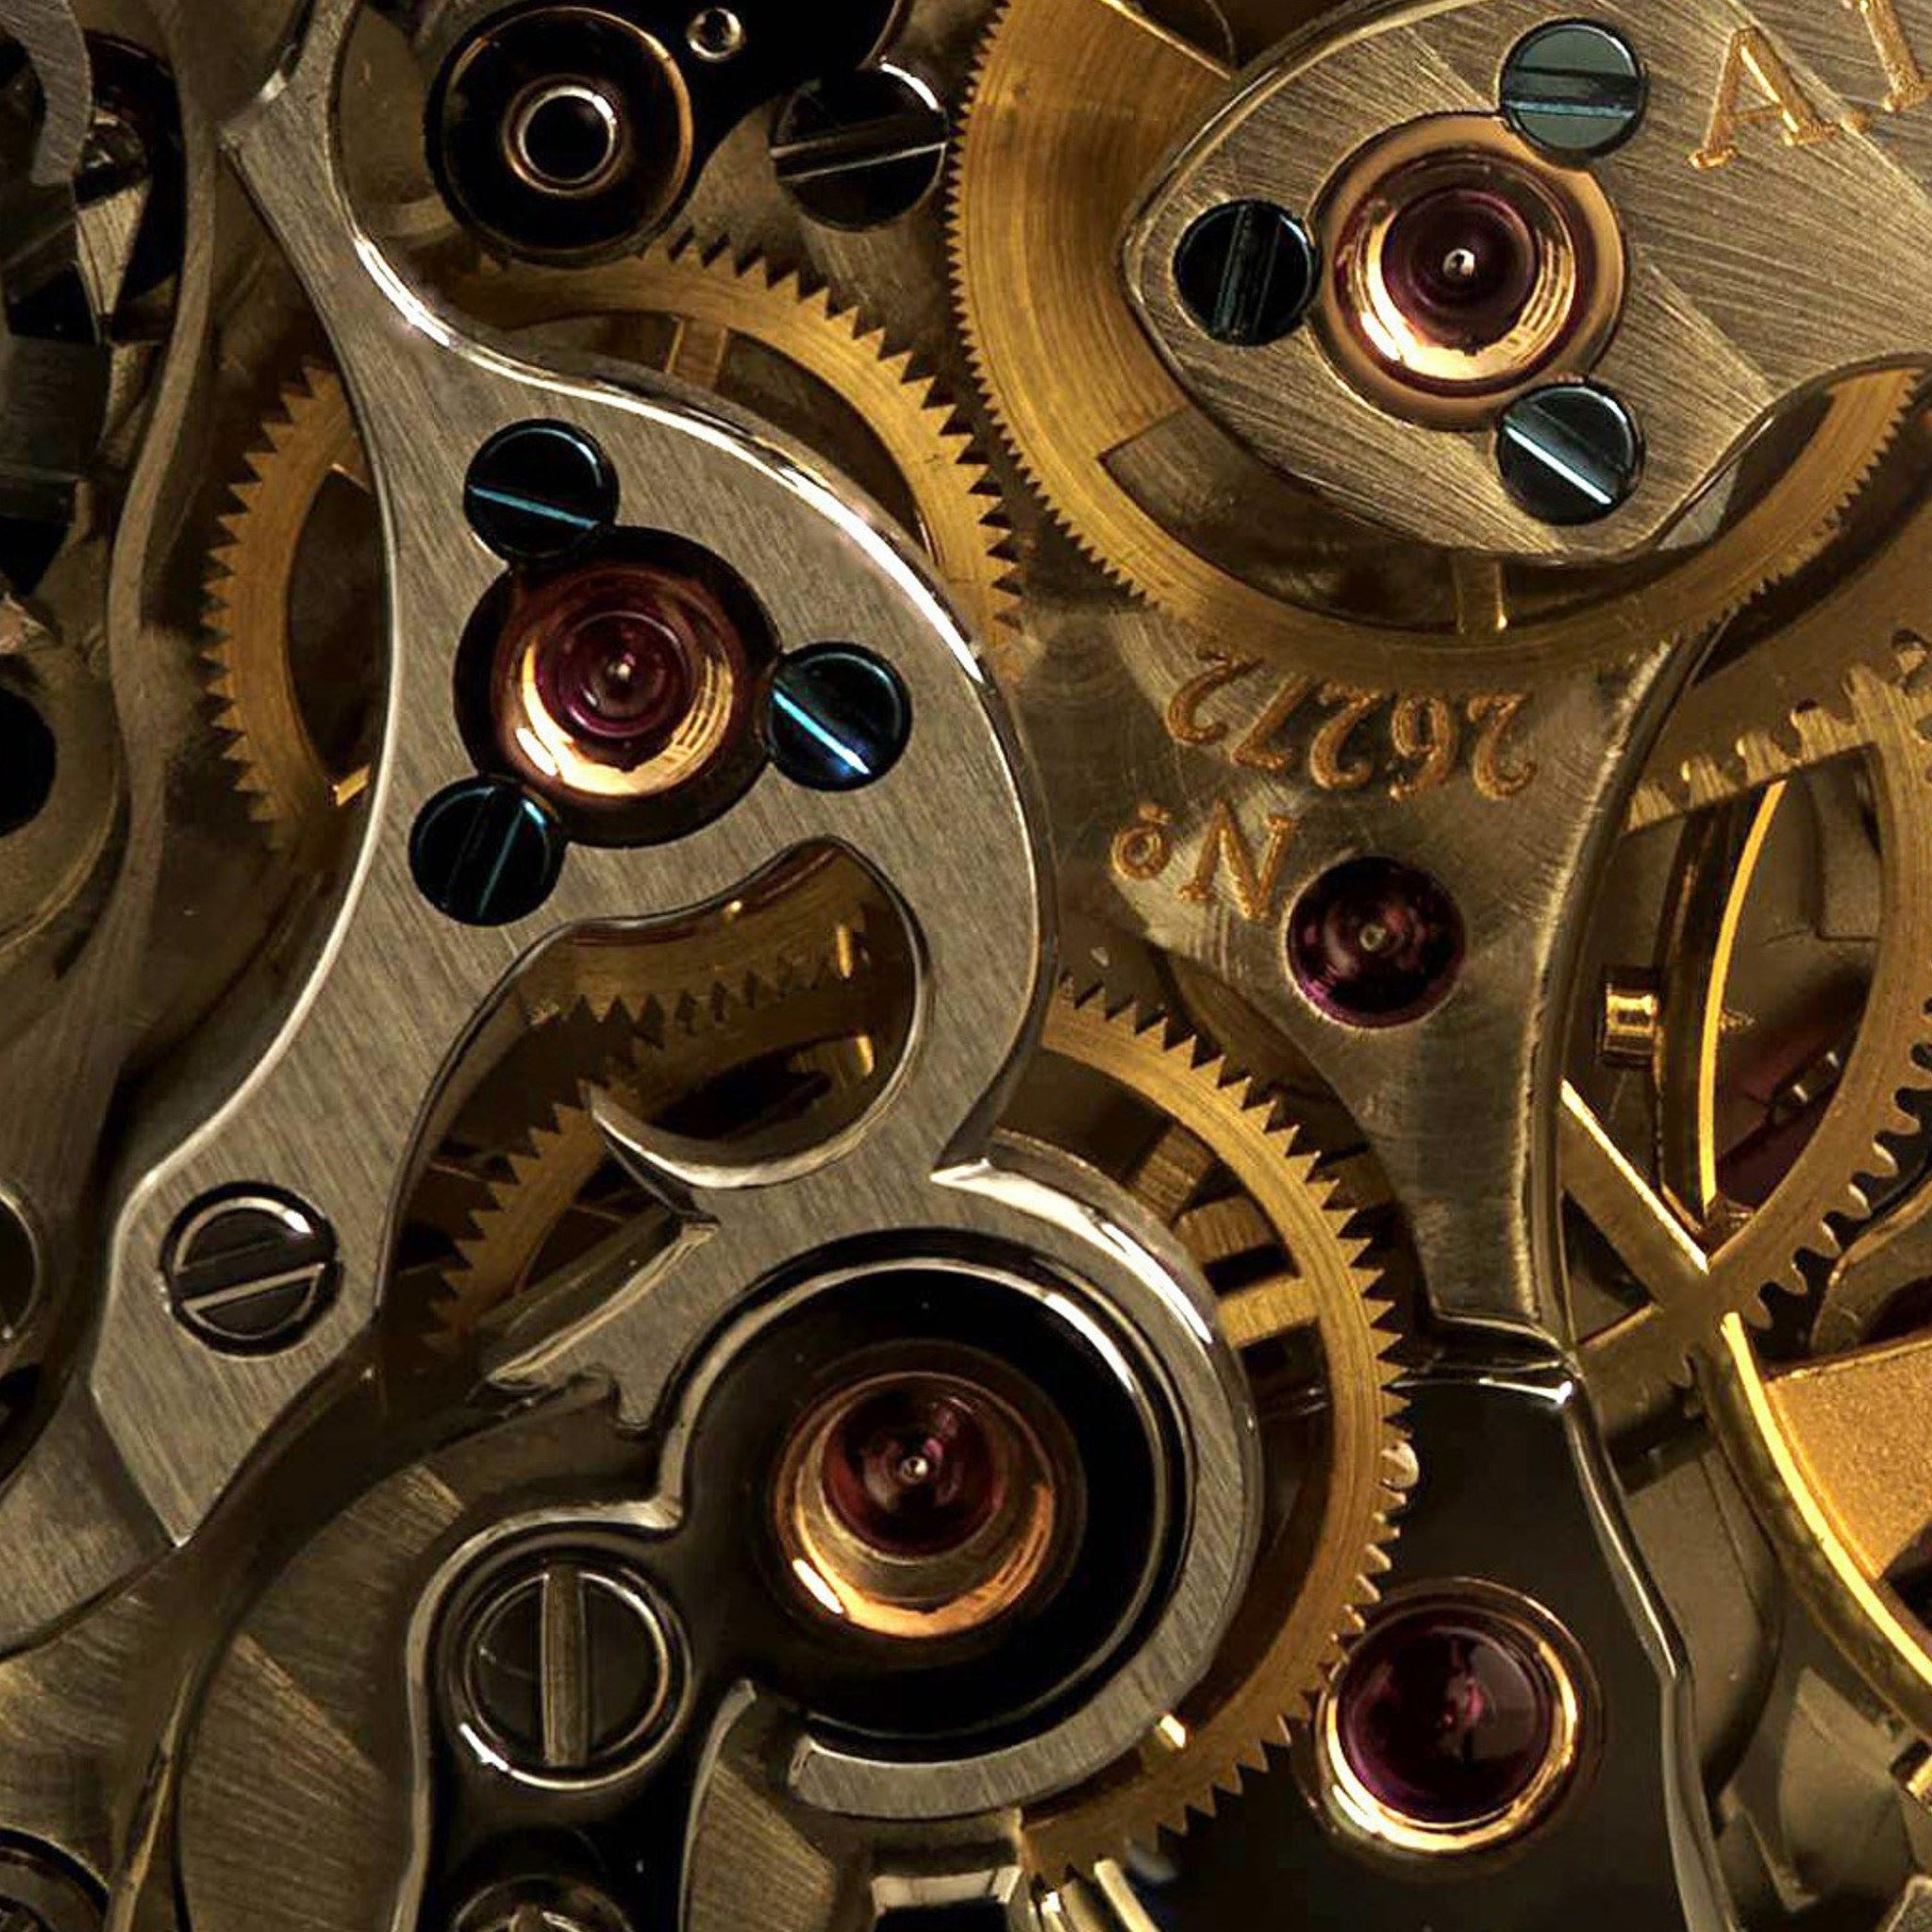 Industry Mechanical Gear Combination Ipad Air Wallpapers